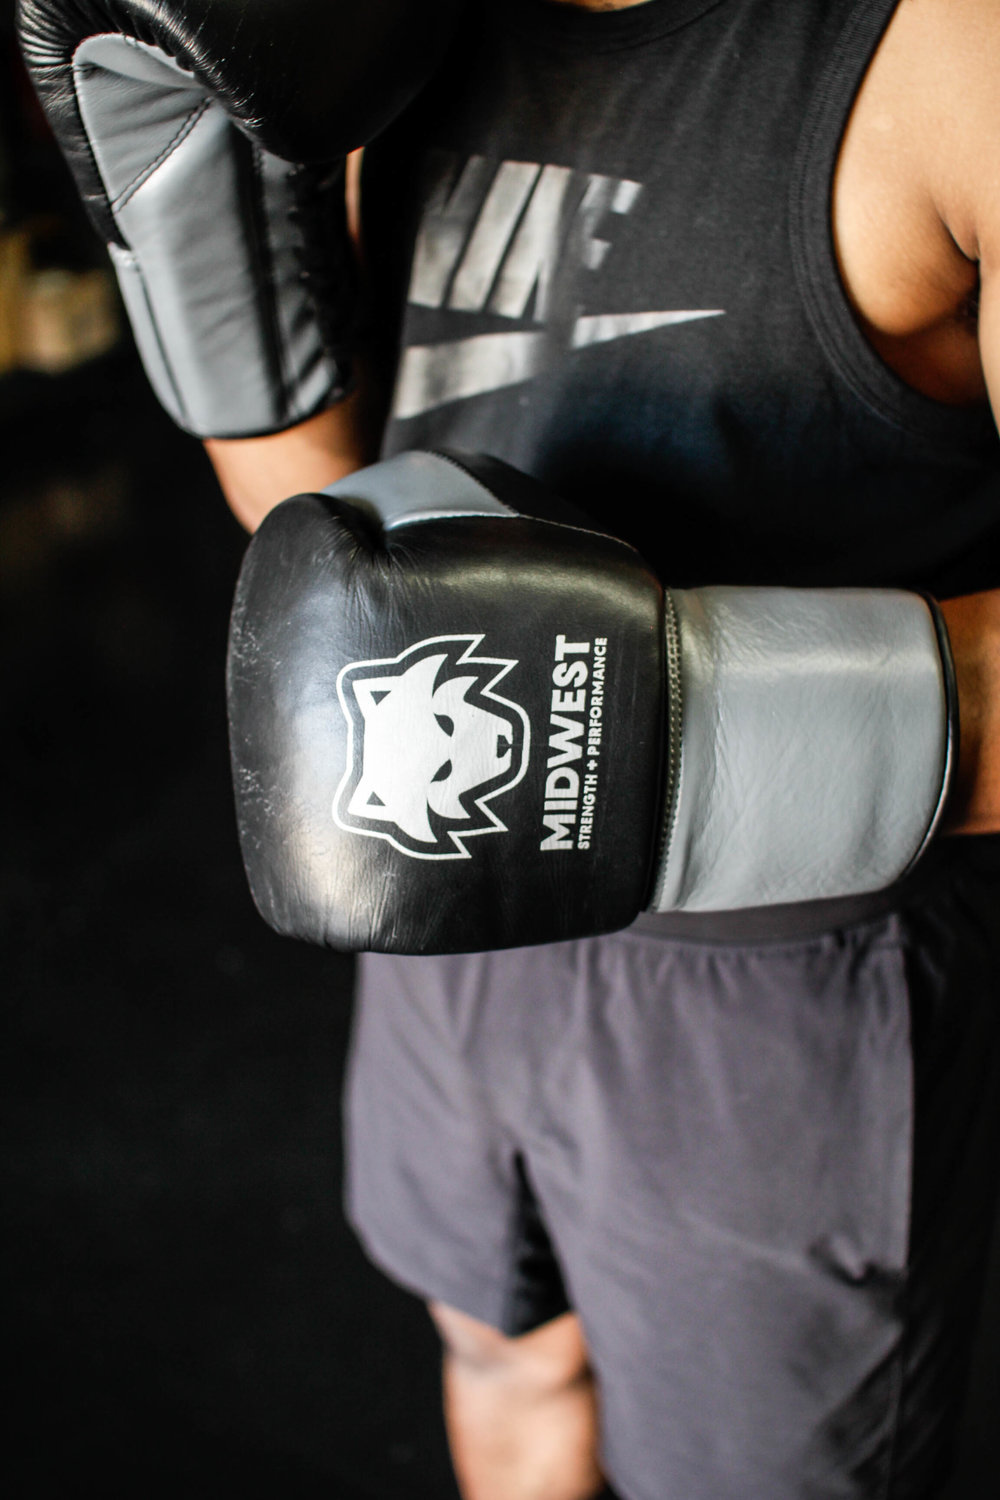 Boxing classes near Wheaton, Illinois